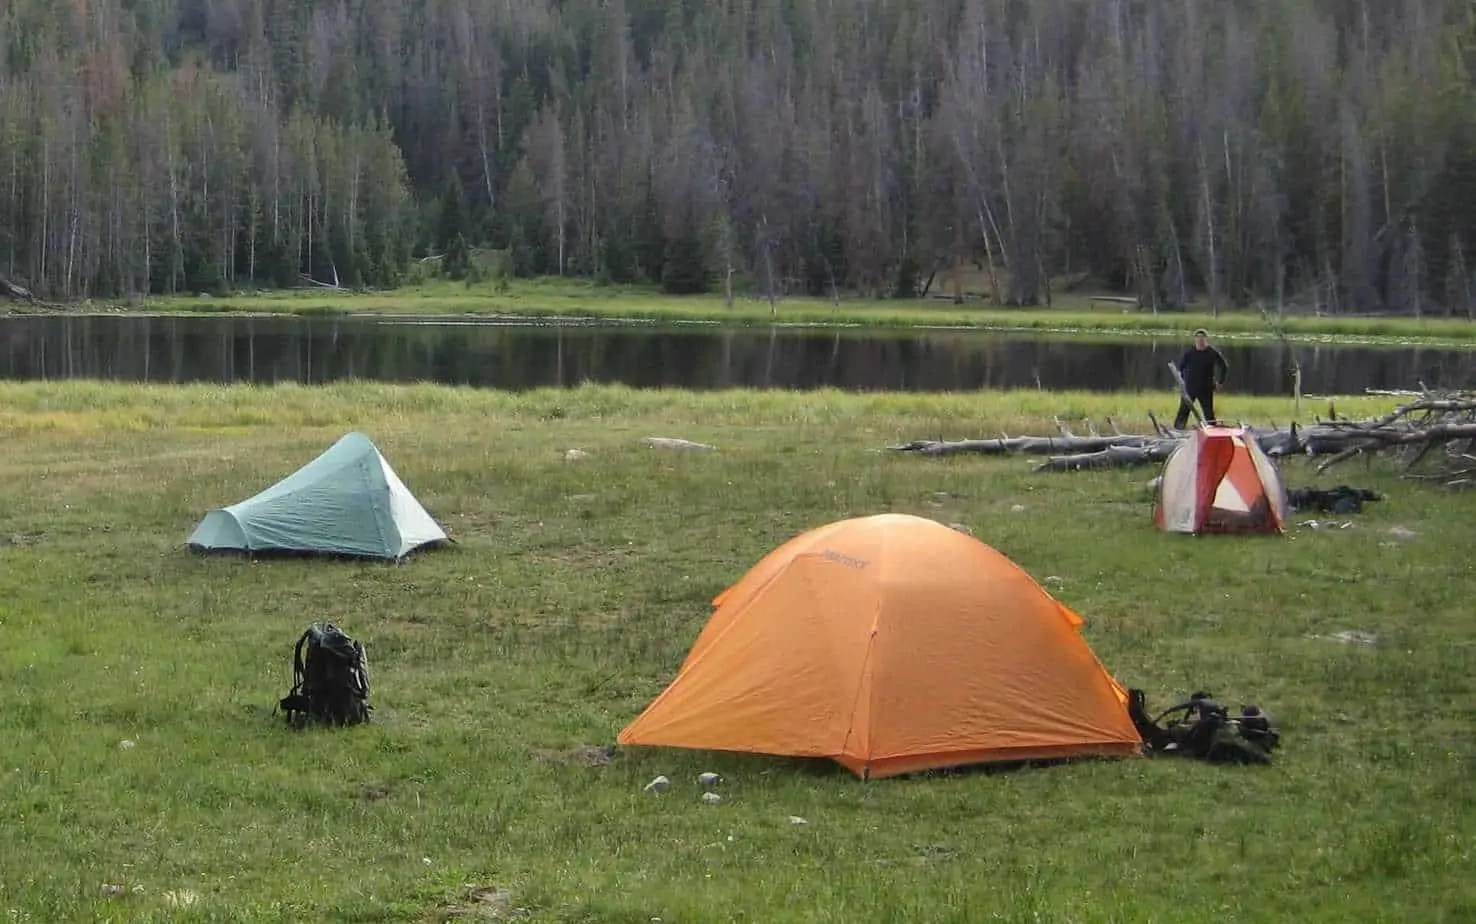 Additionally these double vestibule help keep out rain when entering or exiting the tent. & A Review of the Marmot Ajax 3 Tent: Is It Right For You? - All ...